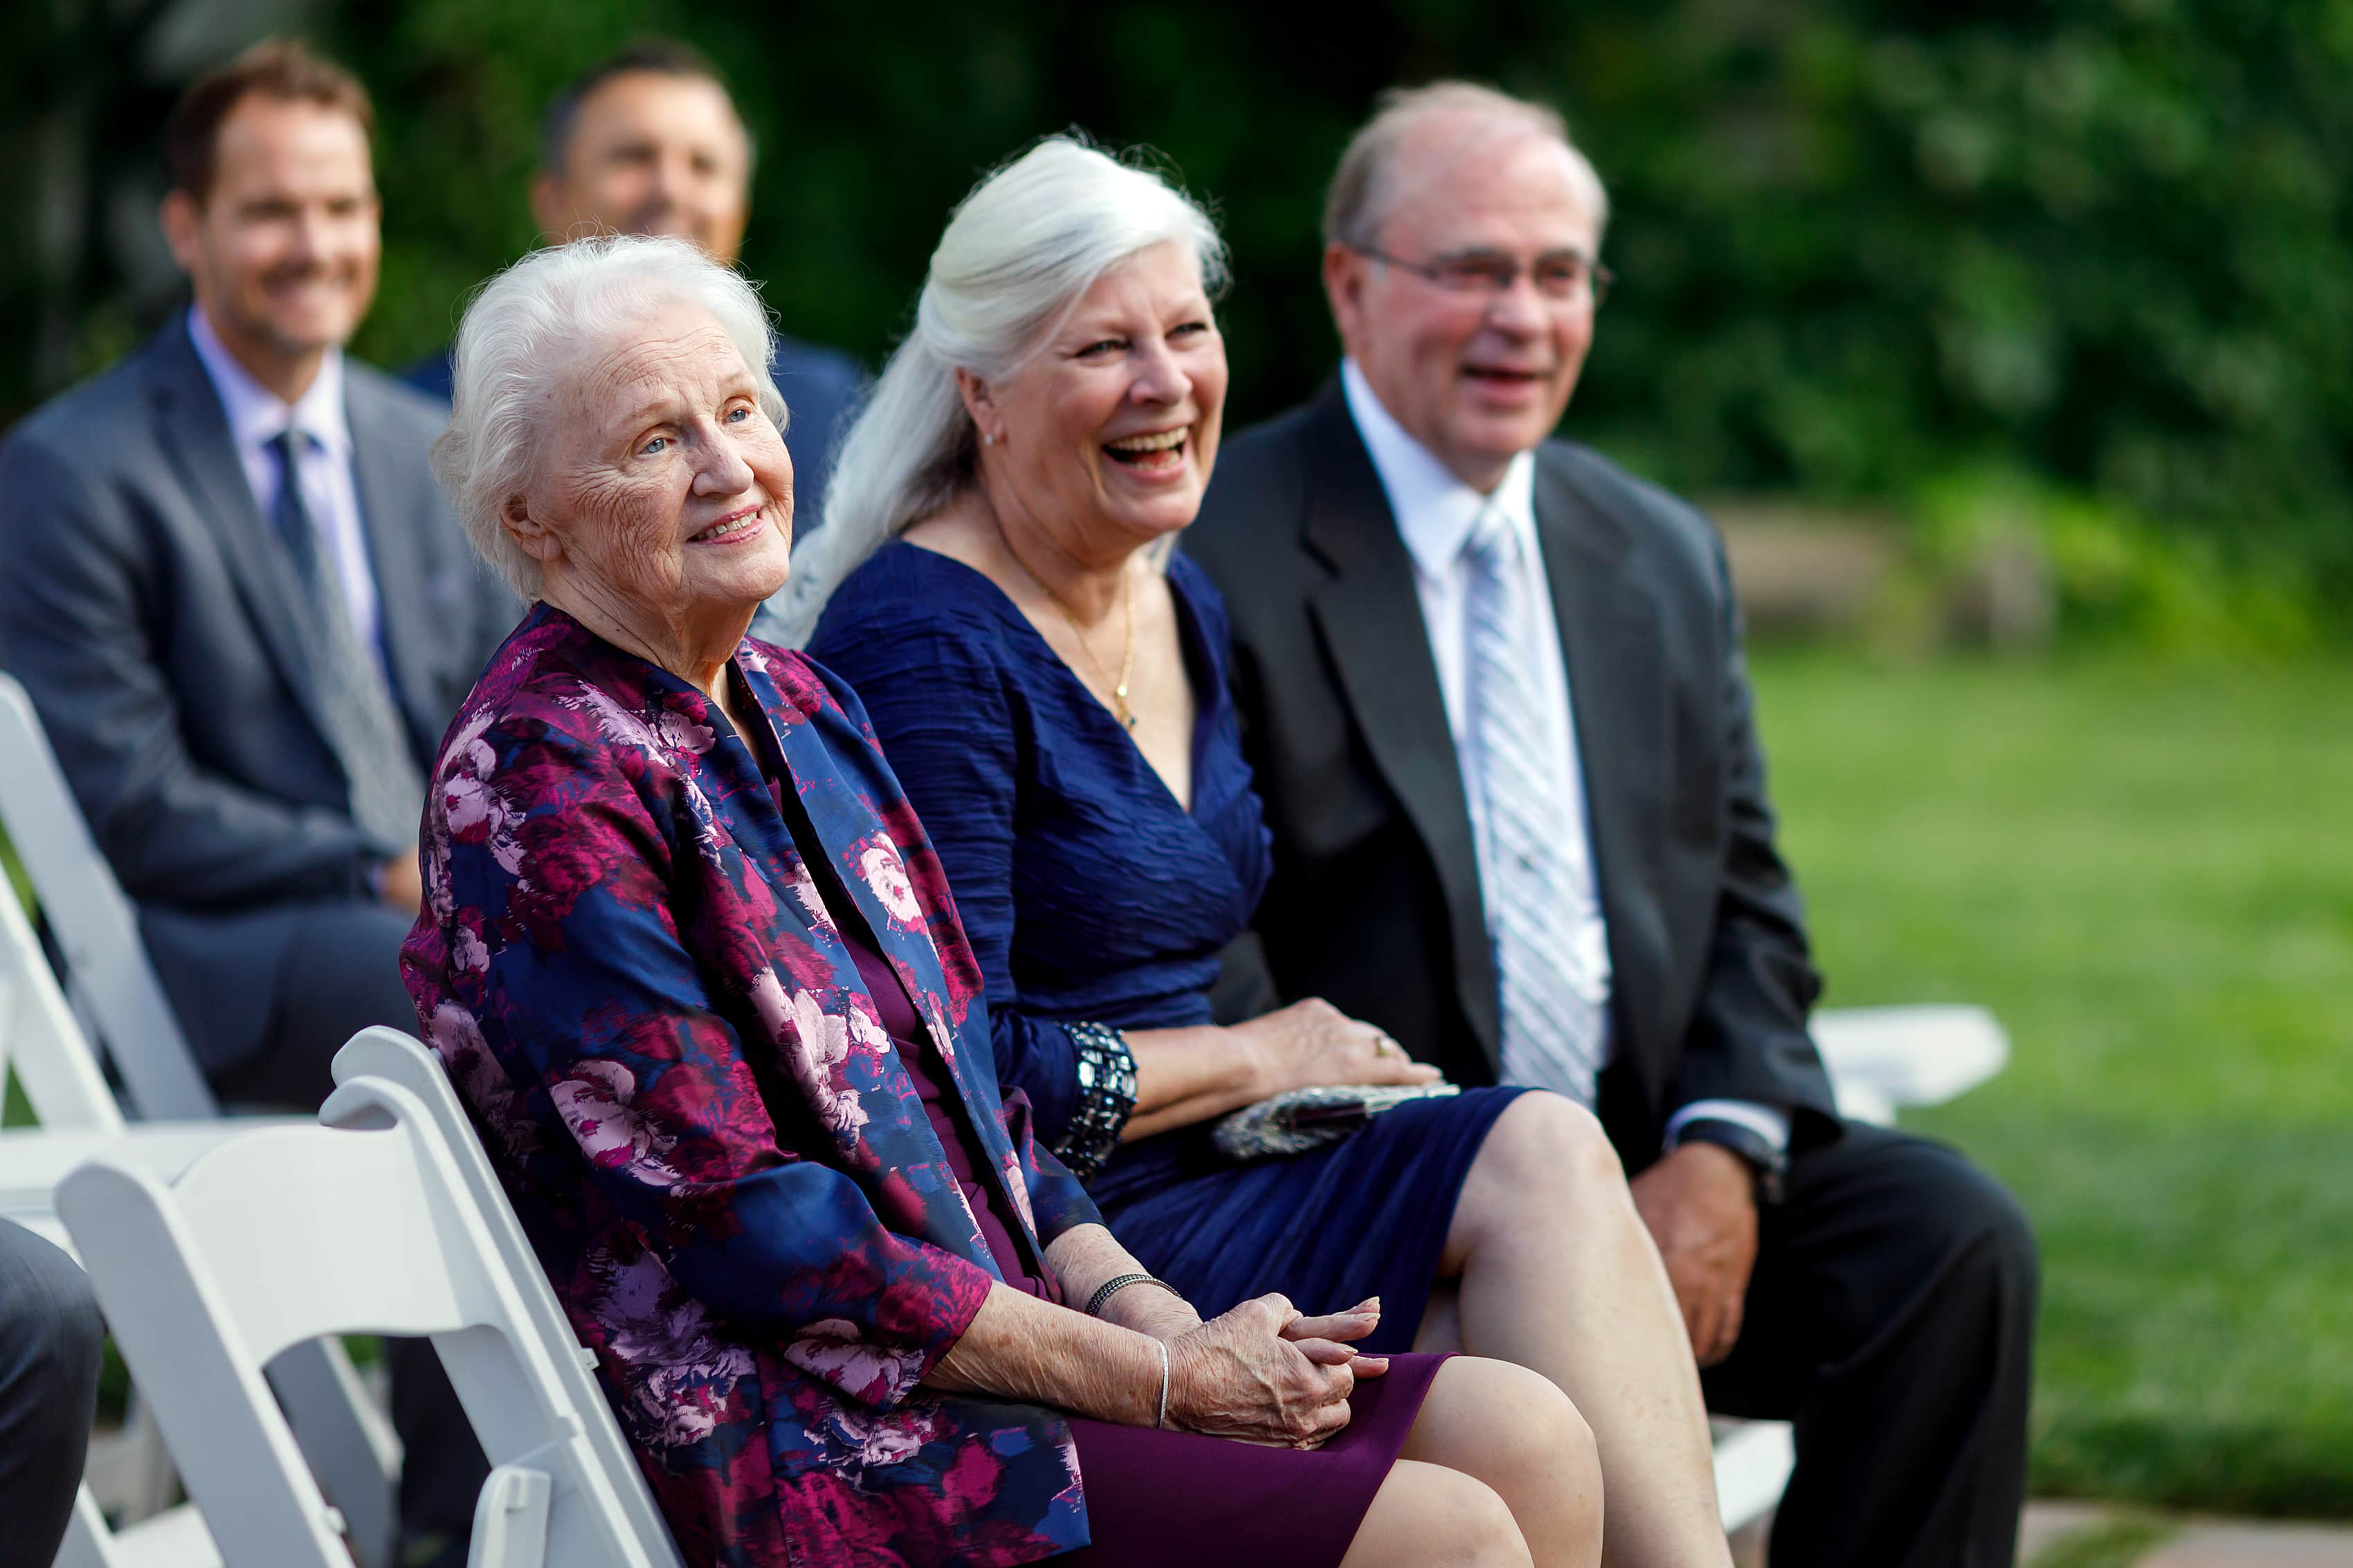 parents laughing during outdoor wedding ceremony at Lionsgate Event Center